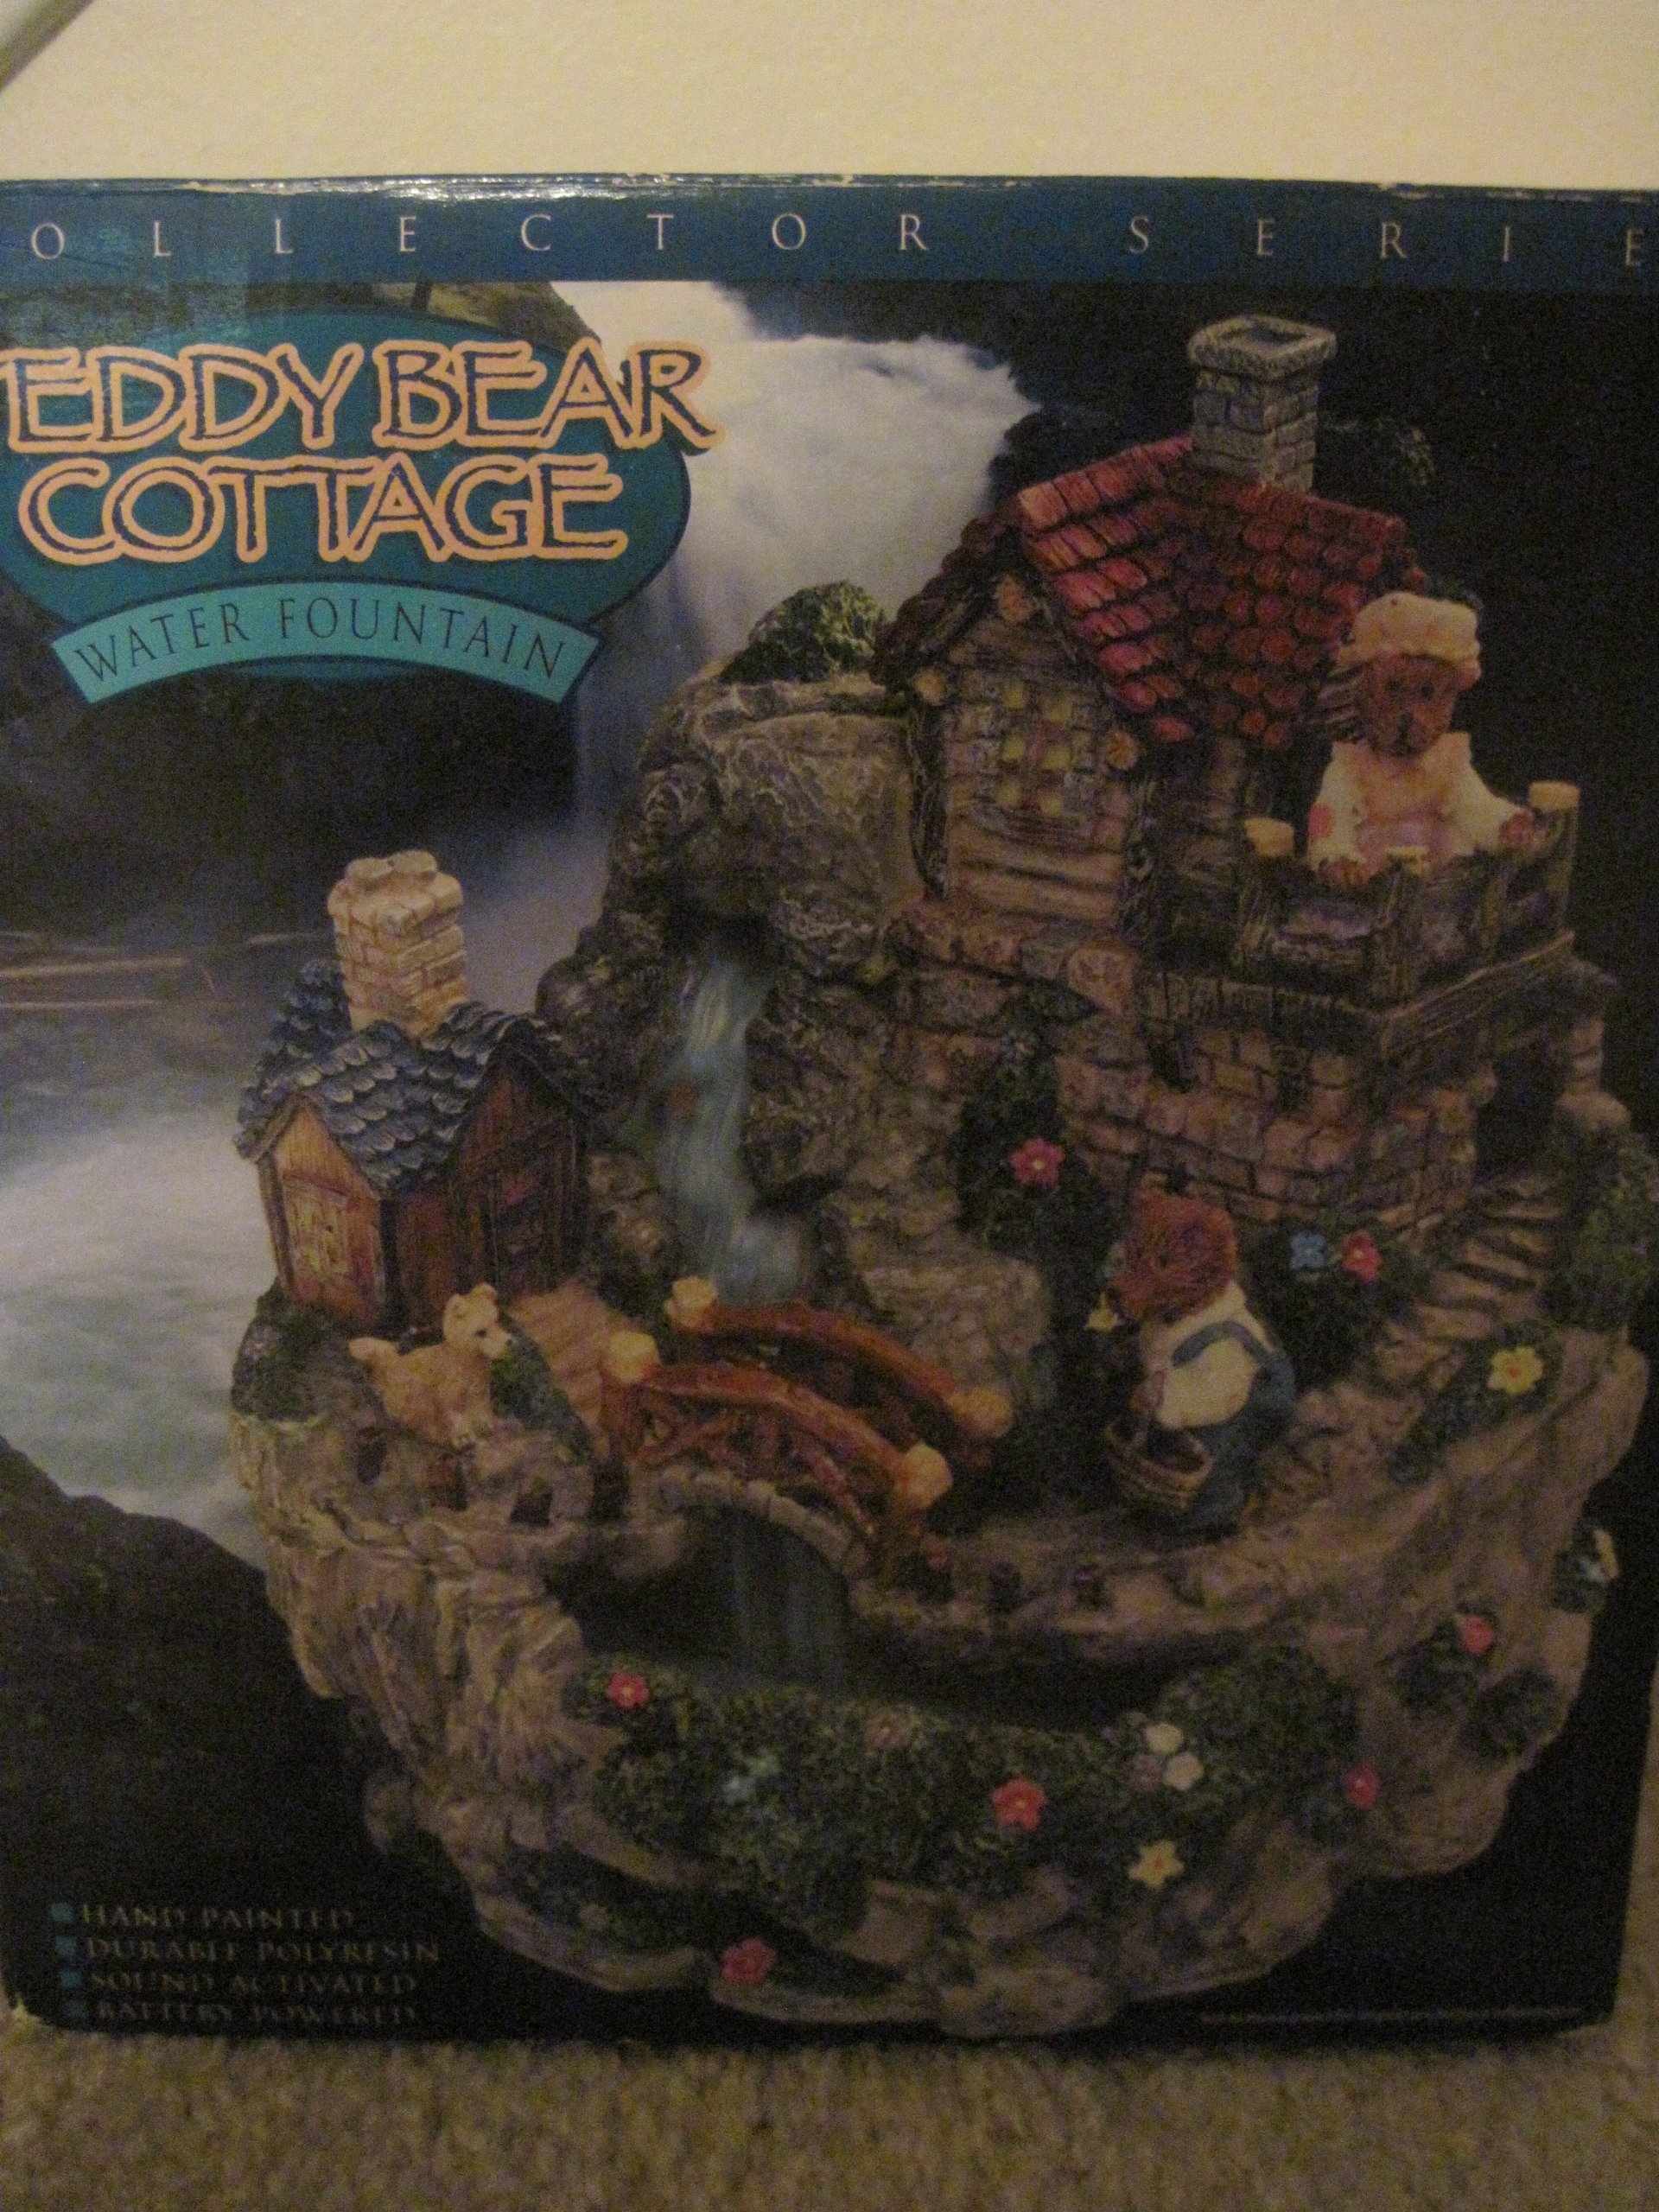 Teddy Bear Cottage Water Fountain